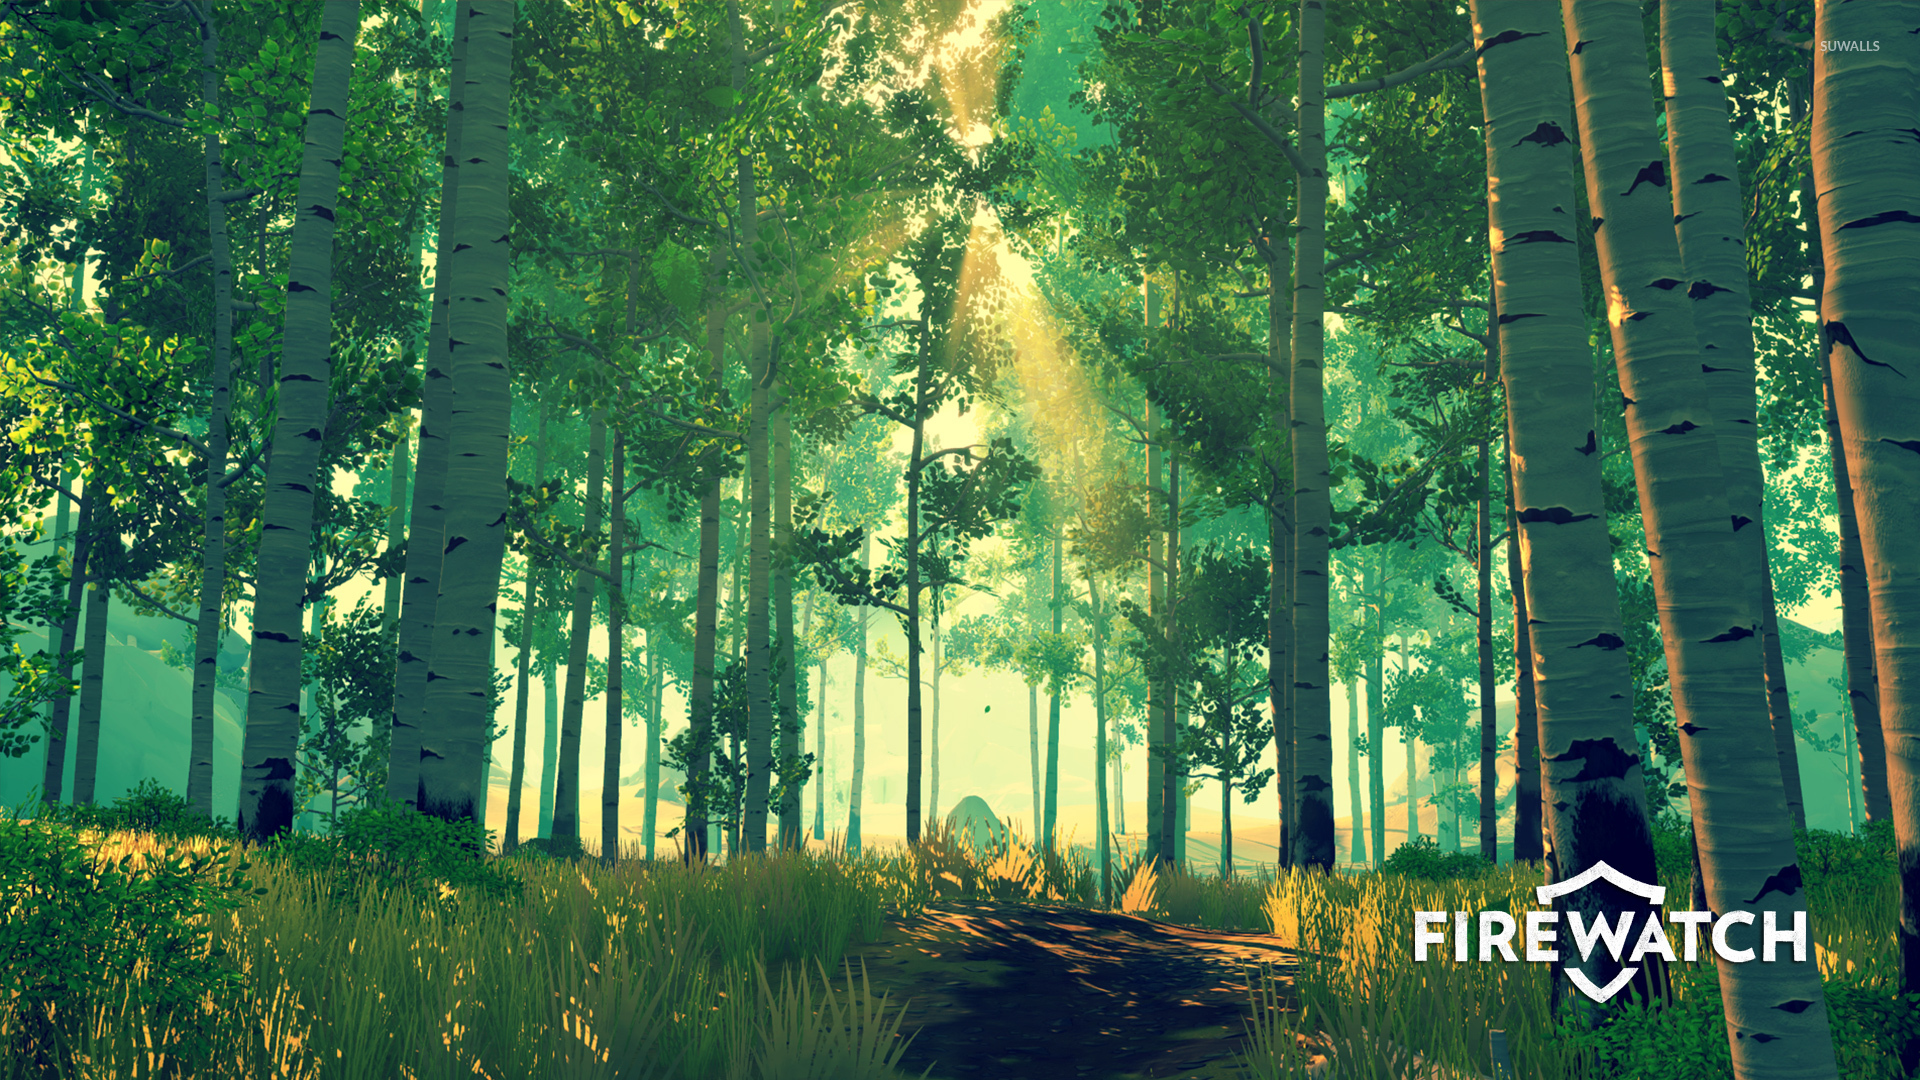 firewatch wallpaper,natural landscape,tree,nature,people in nature,forest